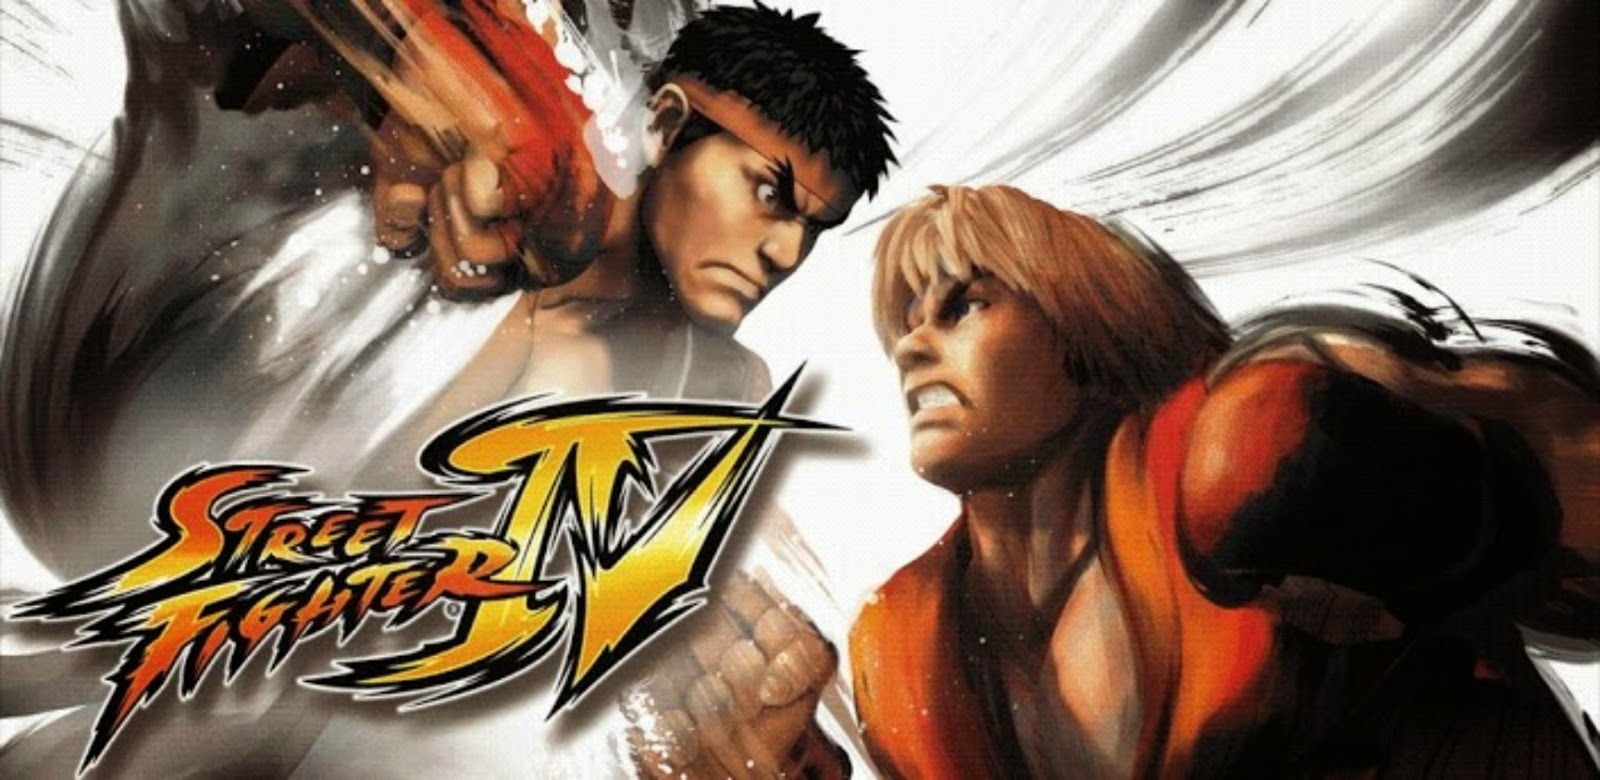 STREET FIGHTER IV HD APK + DATA Android Free Download